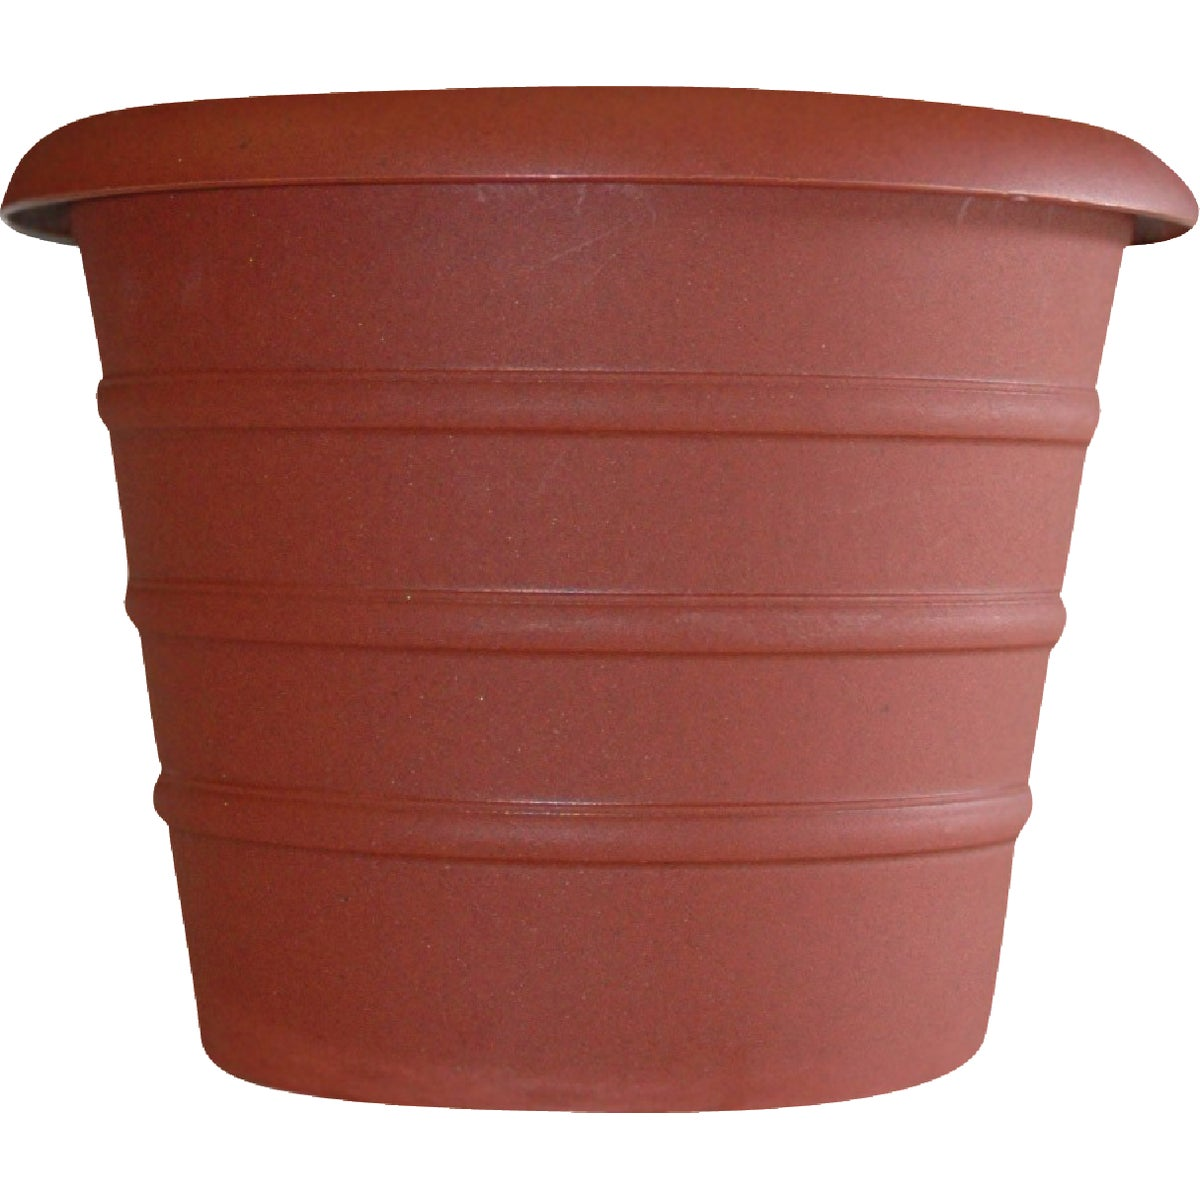 "16""T COTTA MARINA POT"